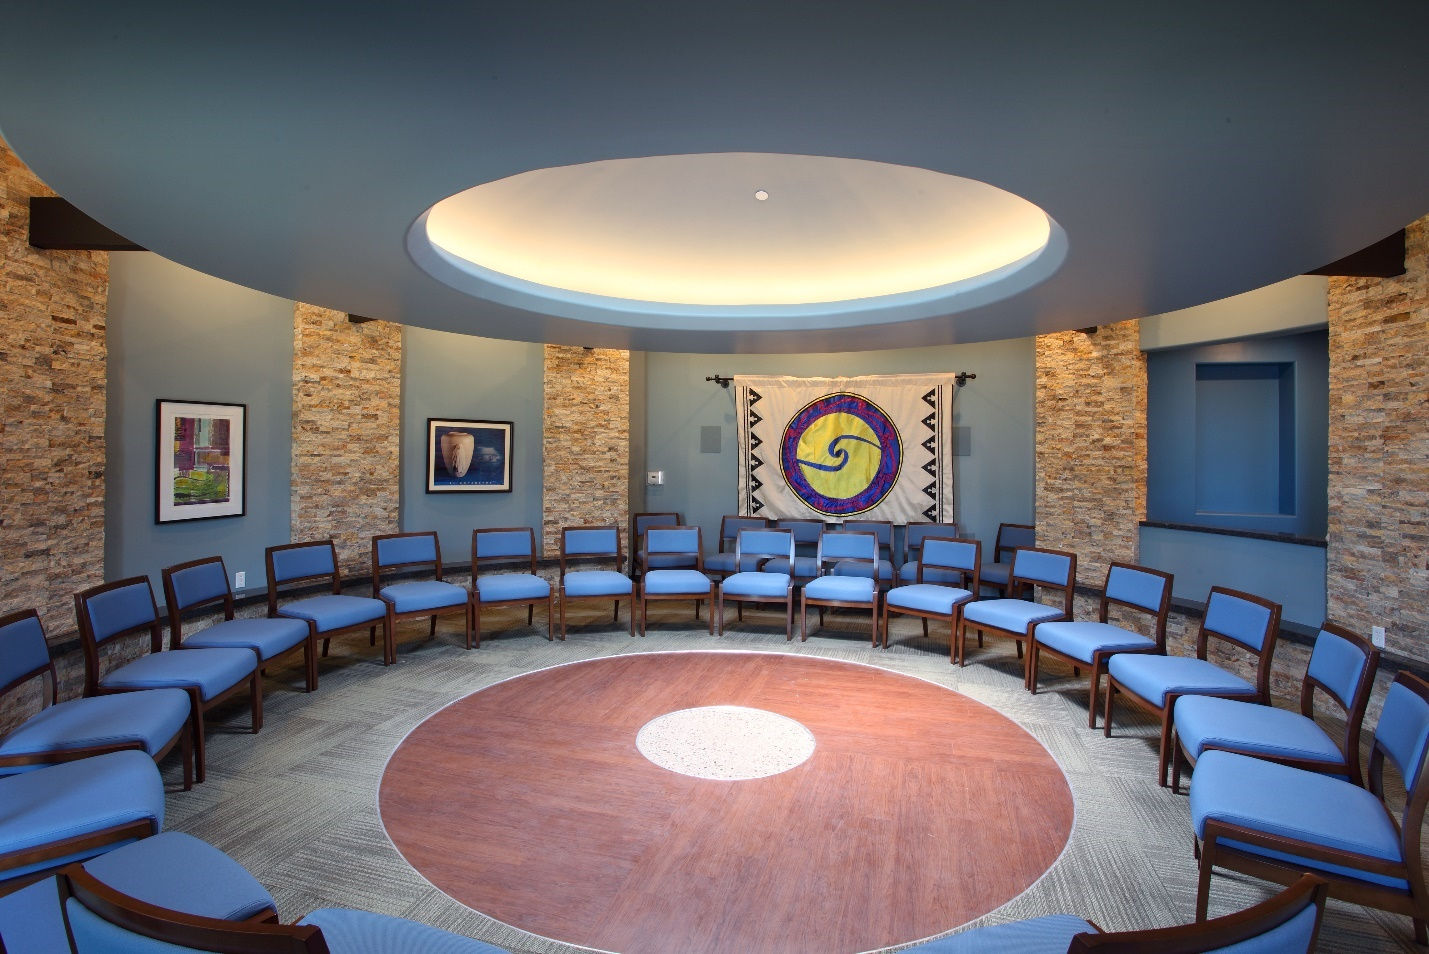 Photograph of the talking circle room at the Patina Wellness Center that has several chairs arranged in a circle with a skylight and Native American art.